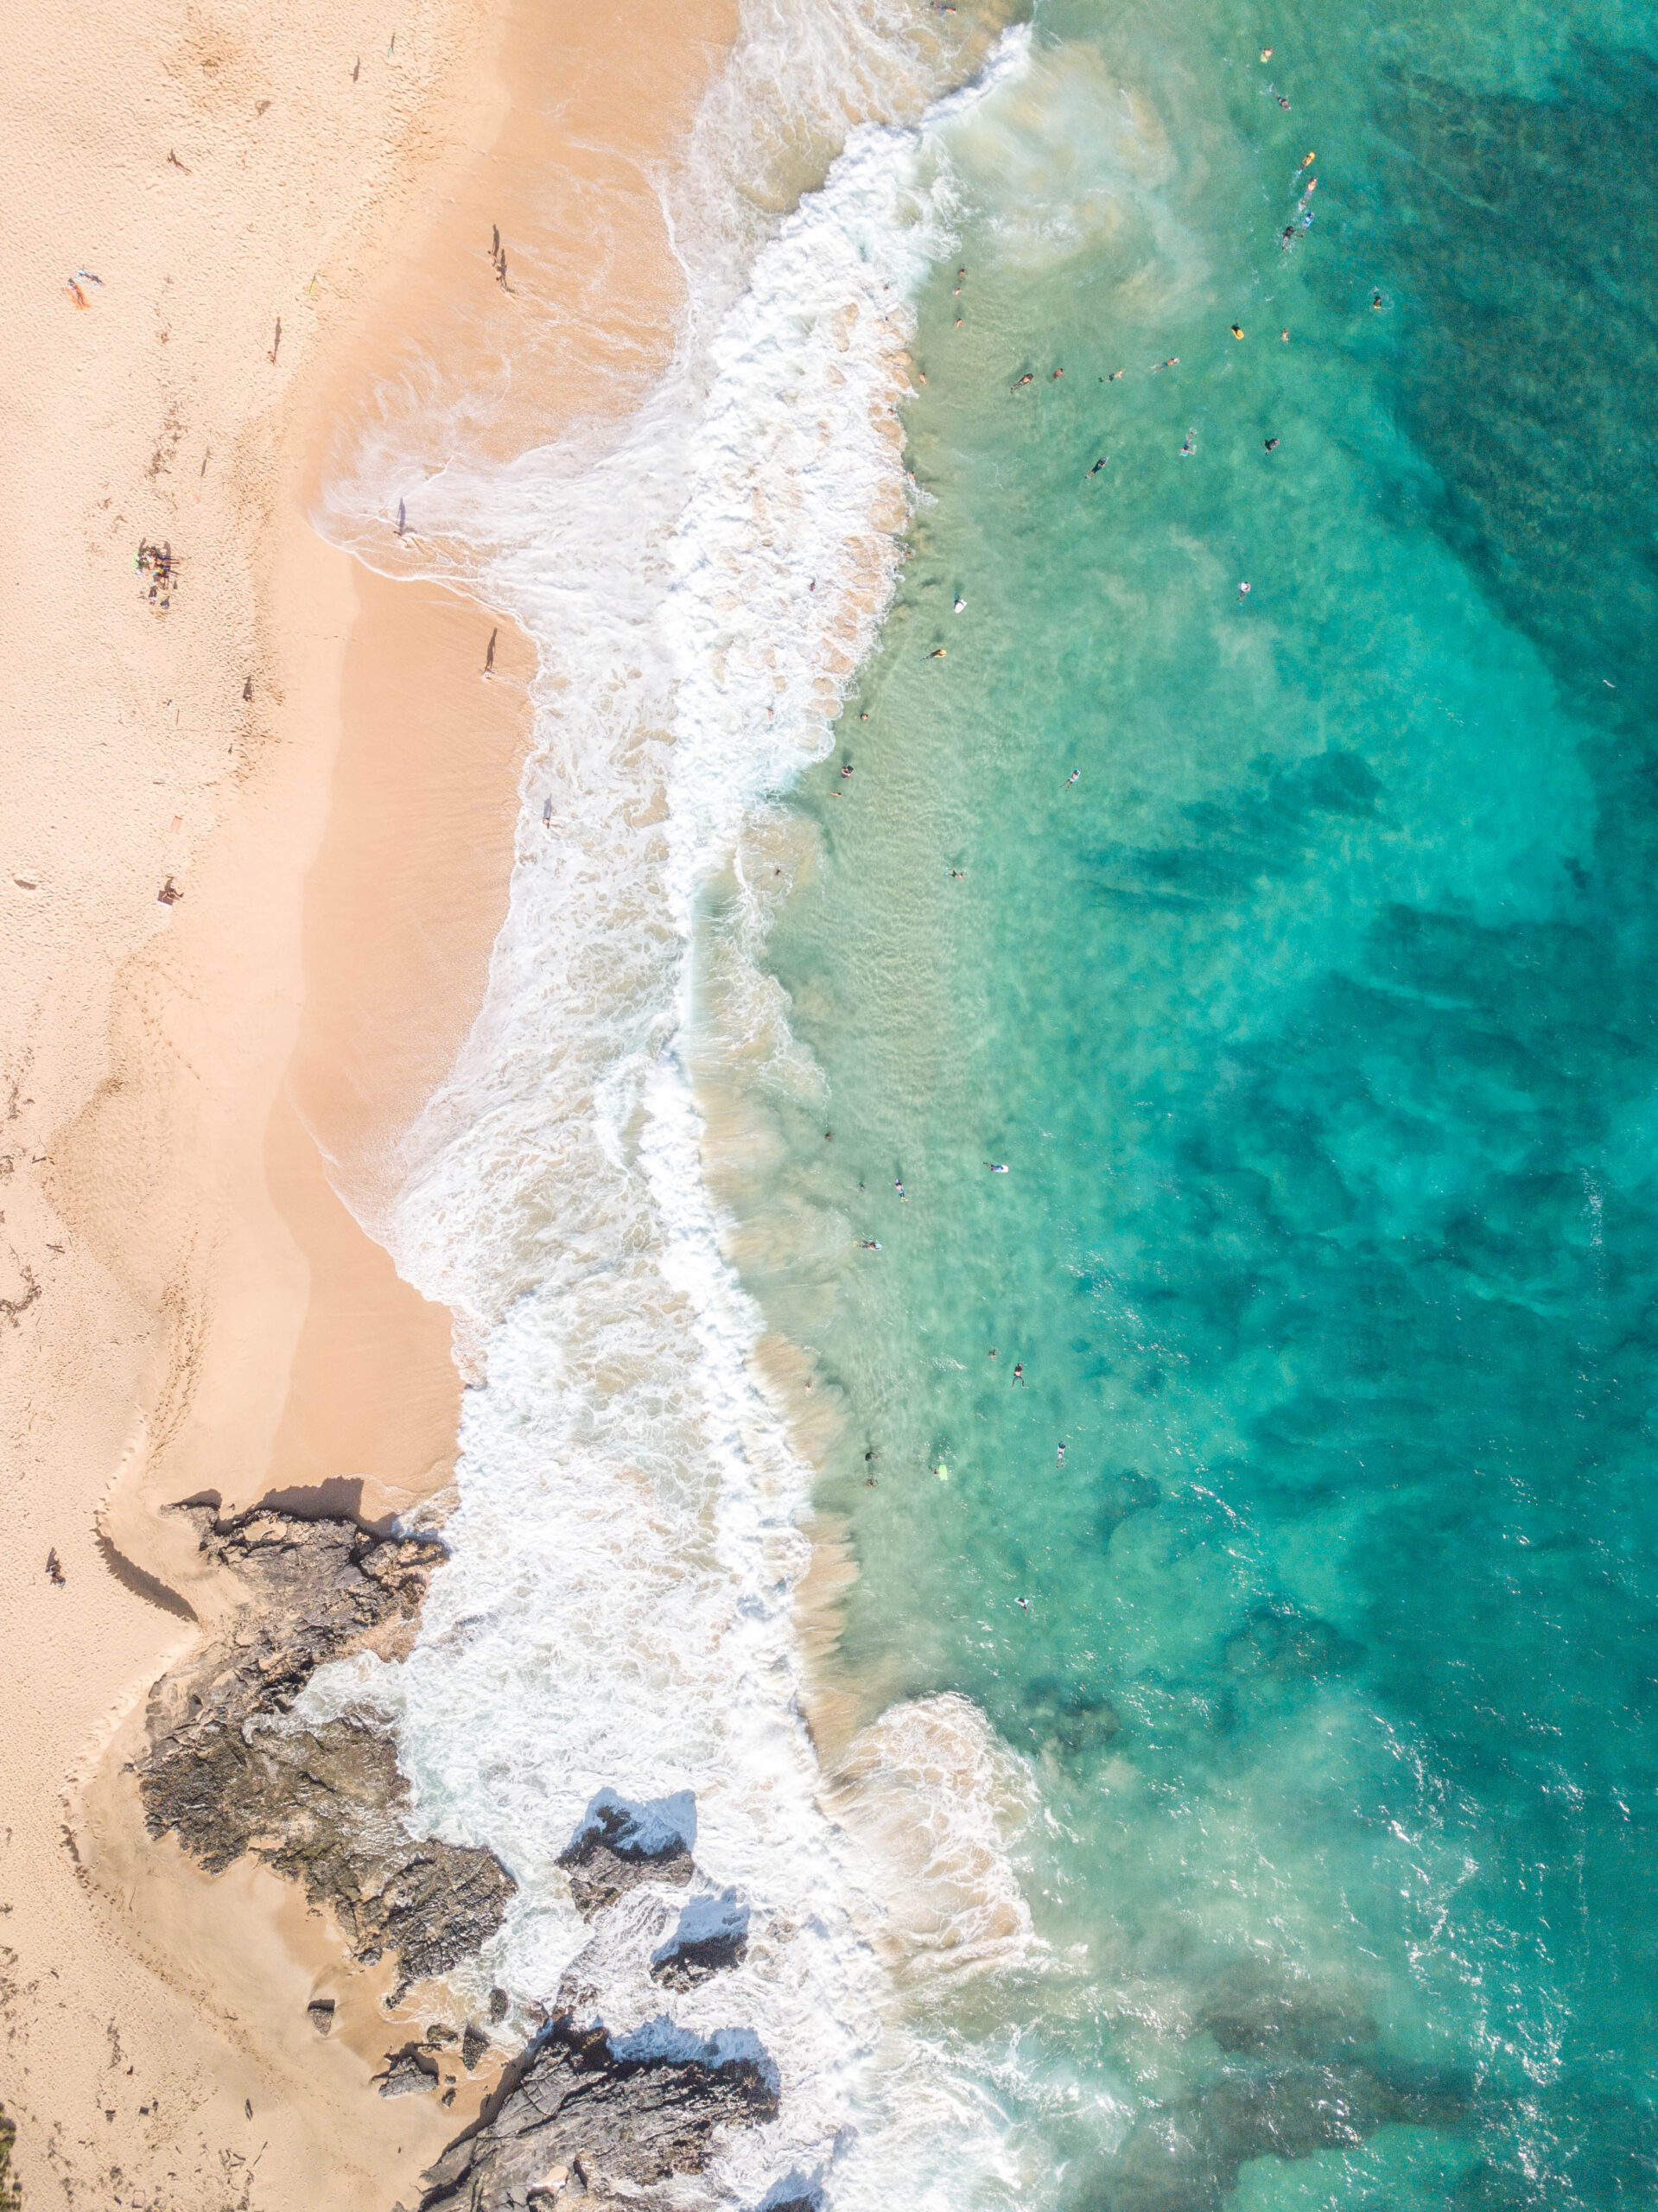 Aerial photo of white sand beach with turquoise water